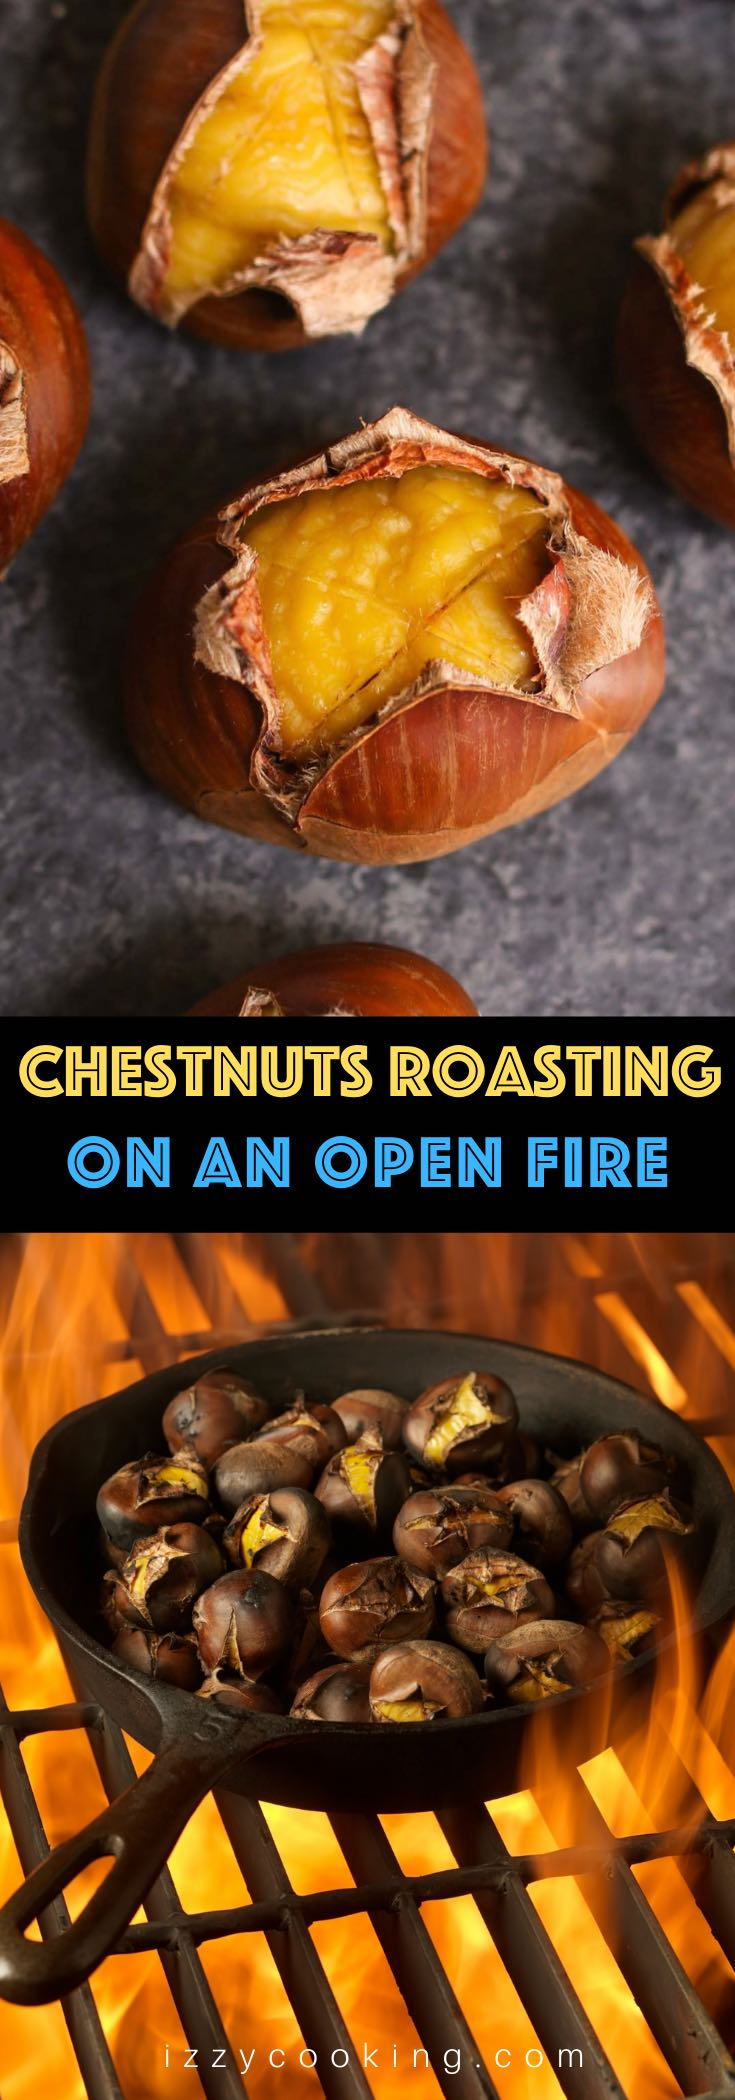 "If you are familiar with the Christmas song ""Chestnuts roasting on an open fire"", then try making this special treat at home this year! Roasted Chestnuts are a great holiday appetizer and a healthy snack that's sweet with a nutty flavor."